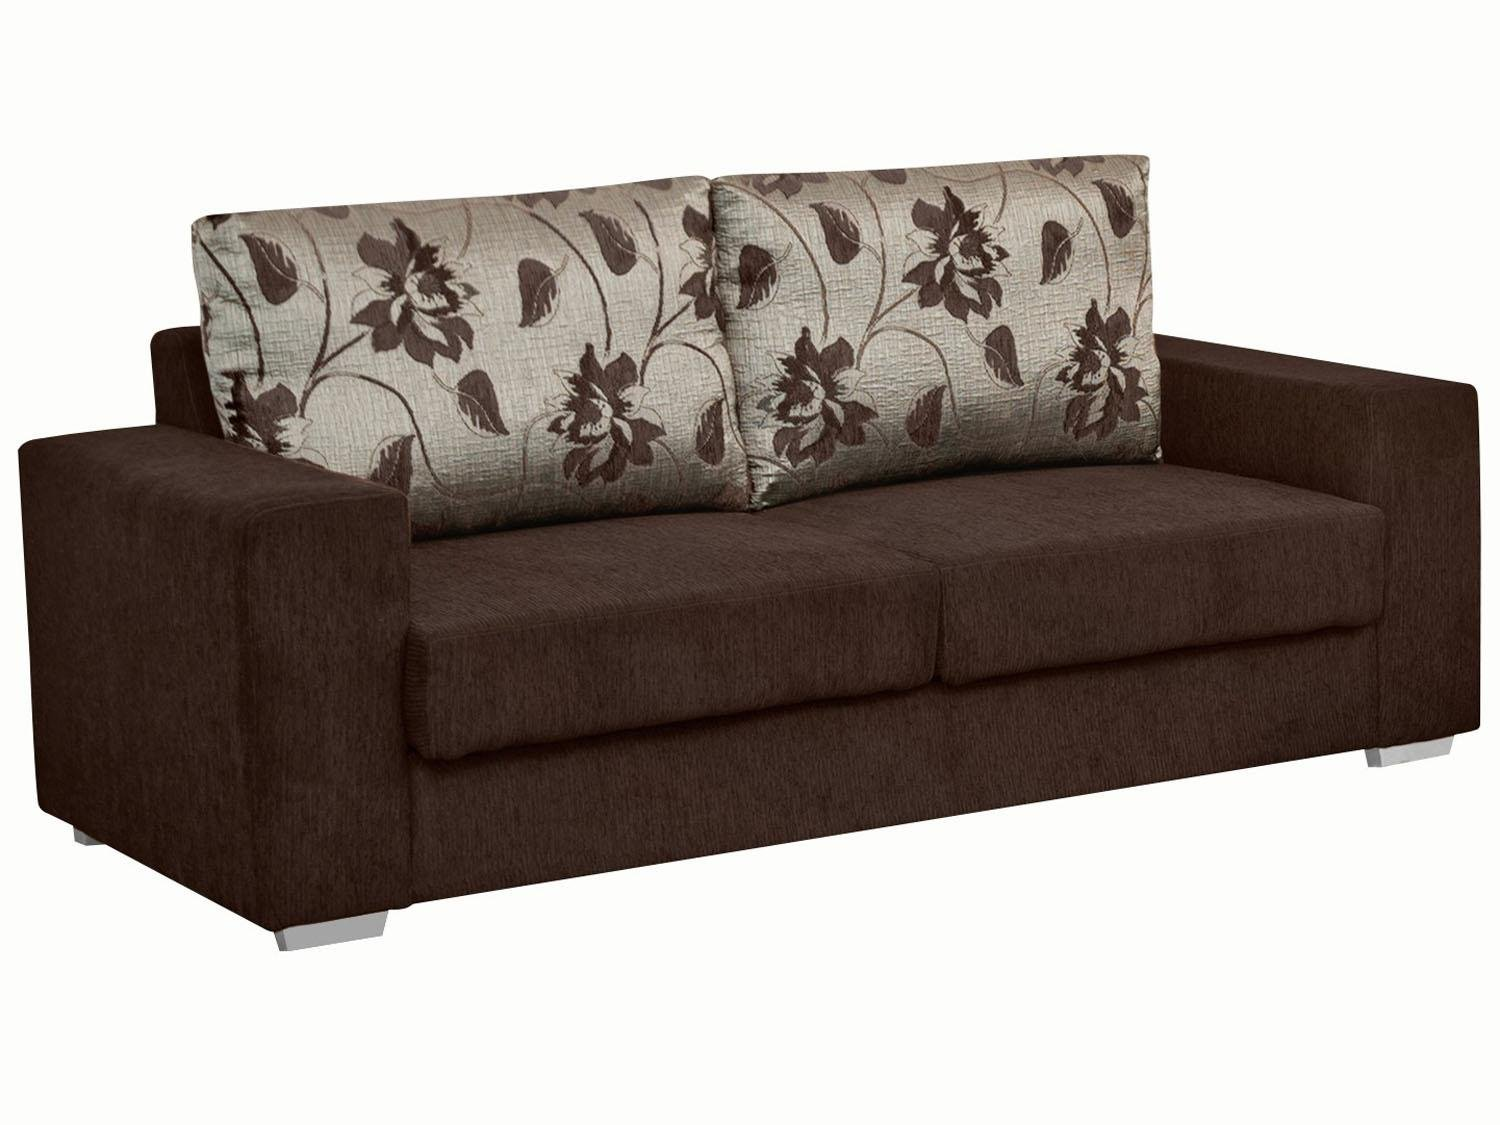 sofa retratil 15 car interior design